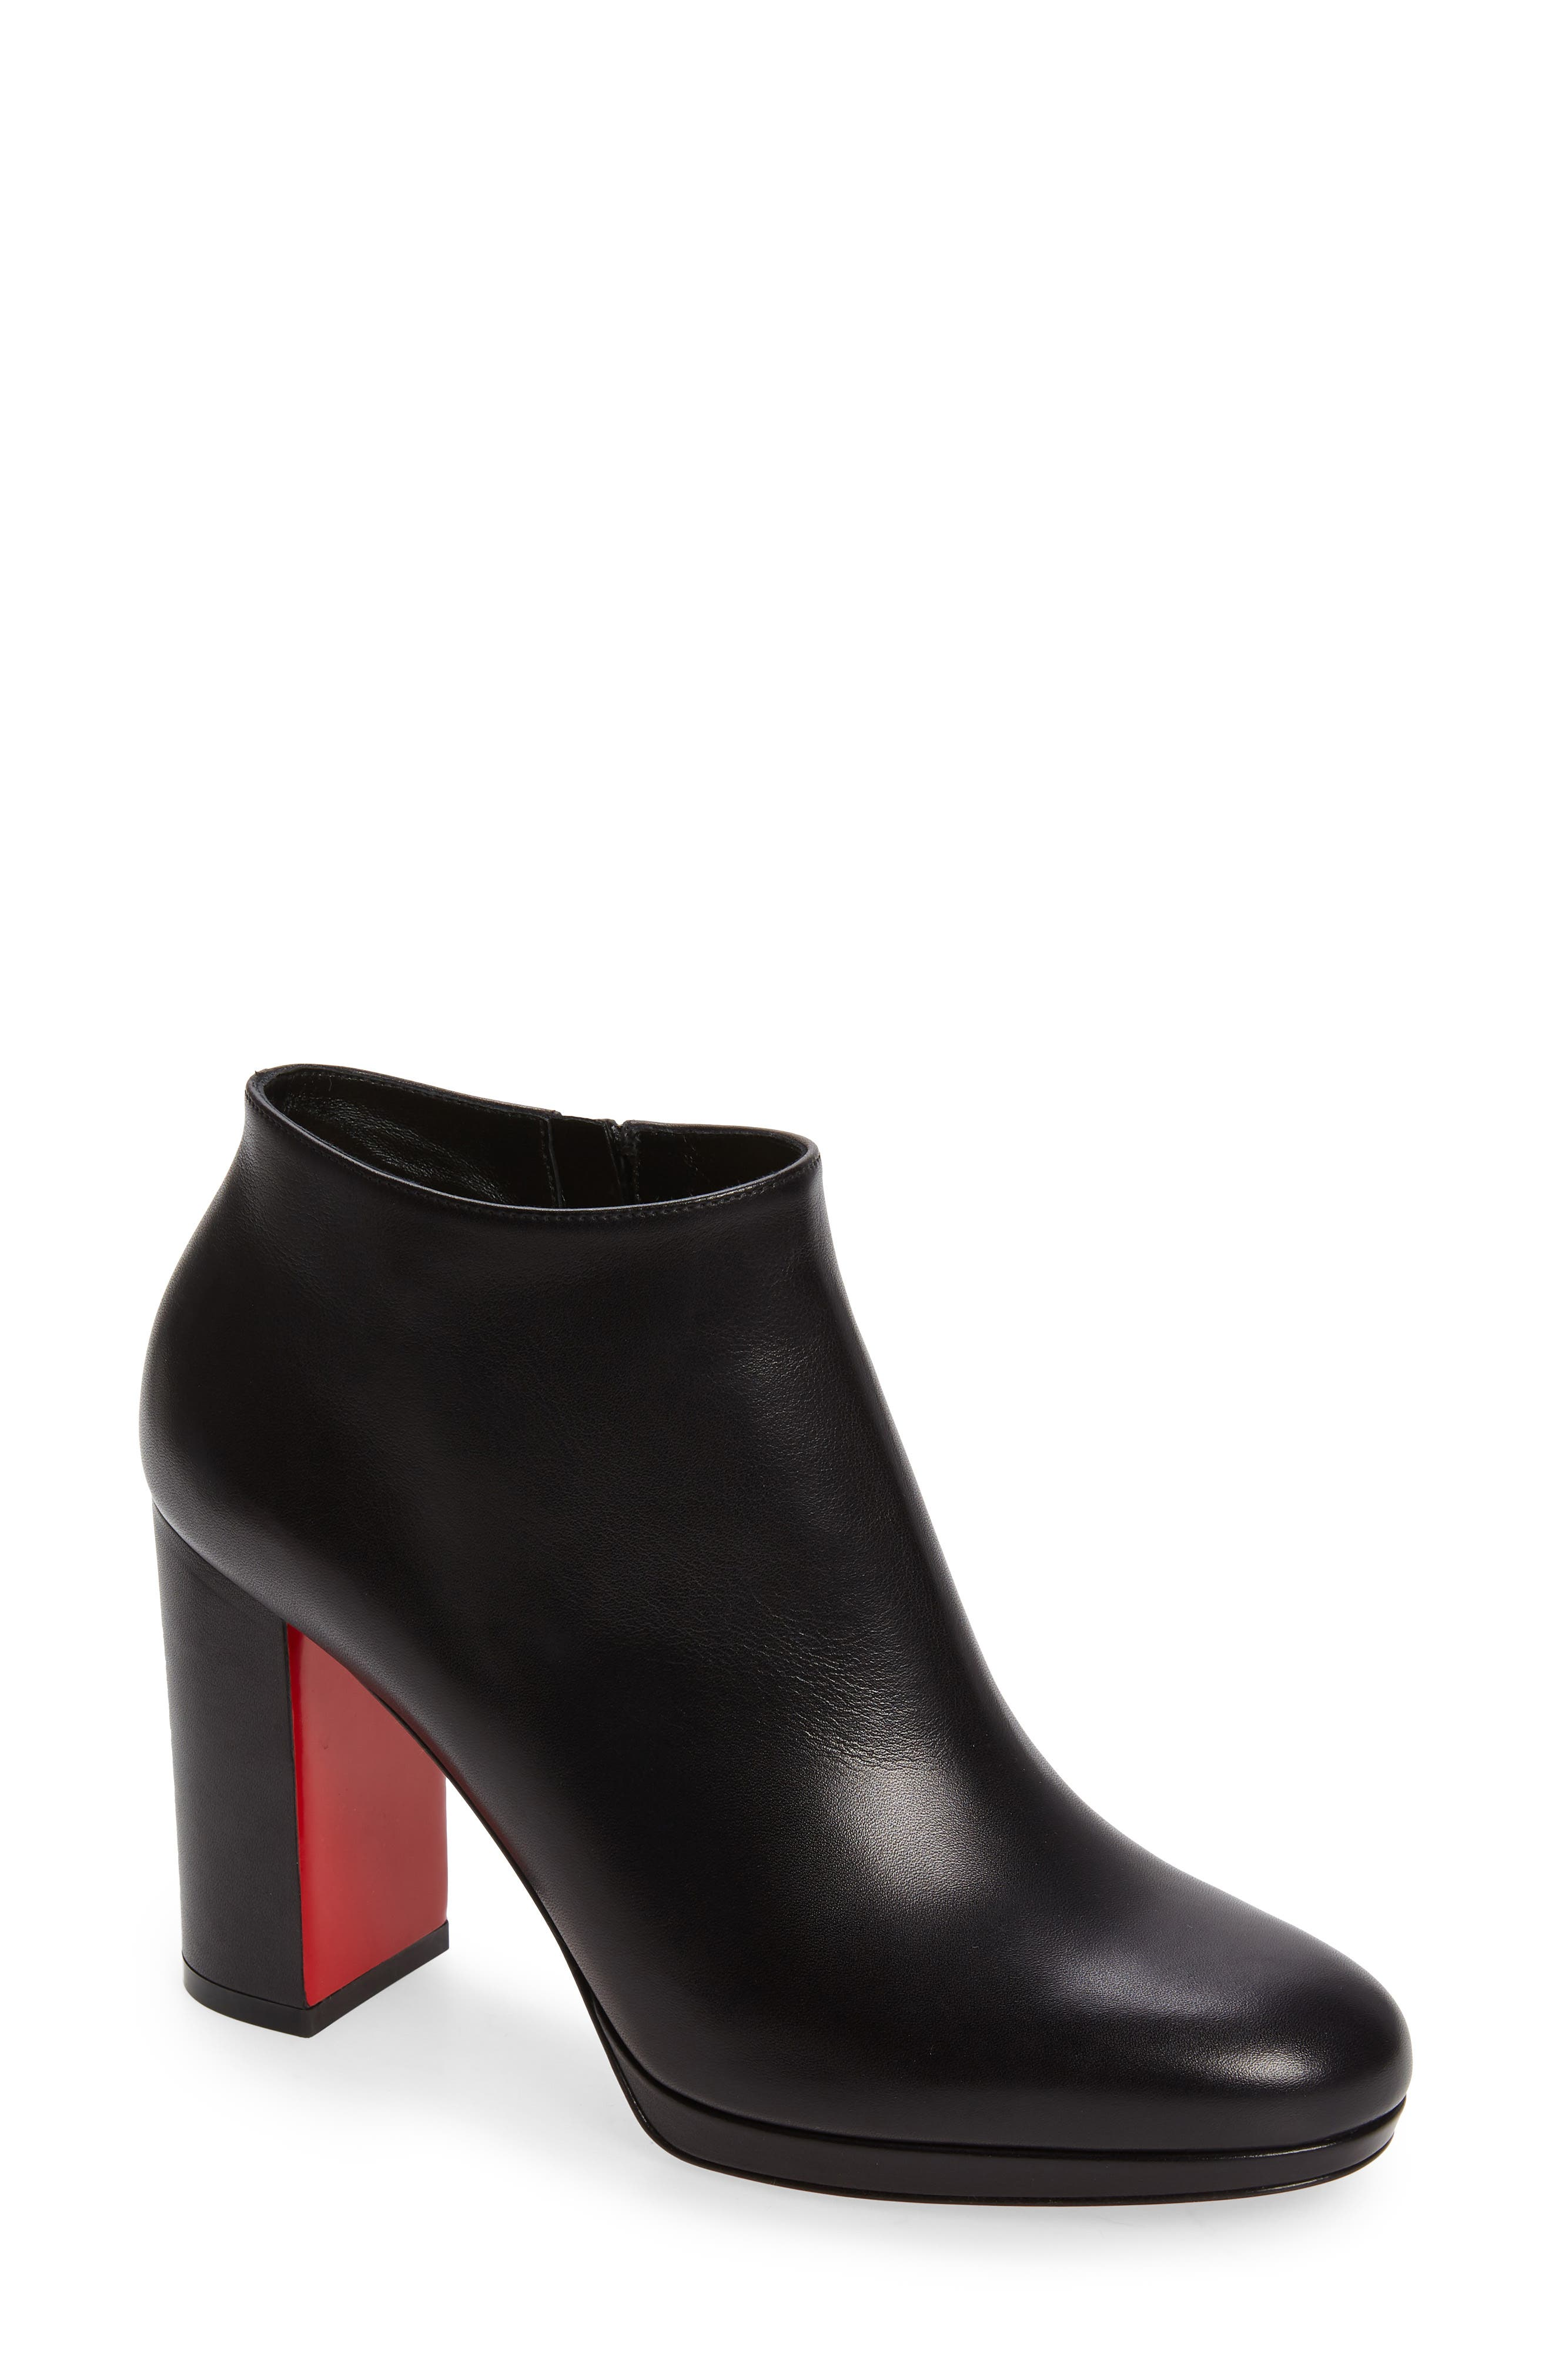 A stunning suede bootie with a low topline and tall block heel flashes Louboutin glam with every step on the red sole. Style Name: Christian Louboutin Pastuer Block Heel Bootie (Women). Style Number: 6005822. Available in stores.